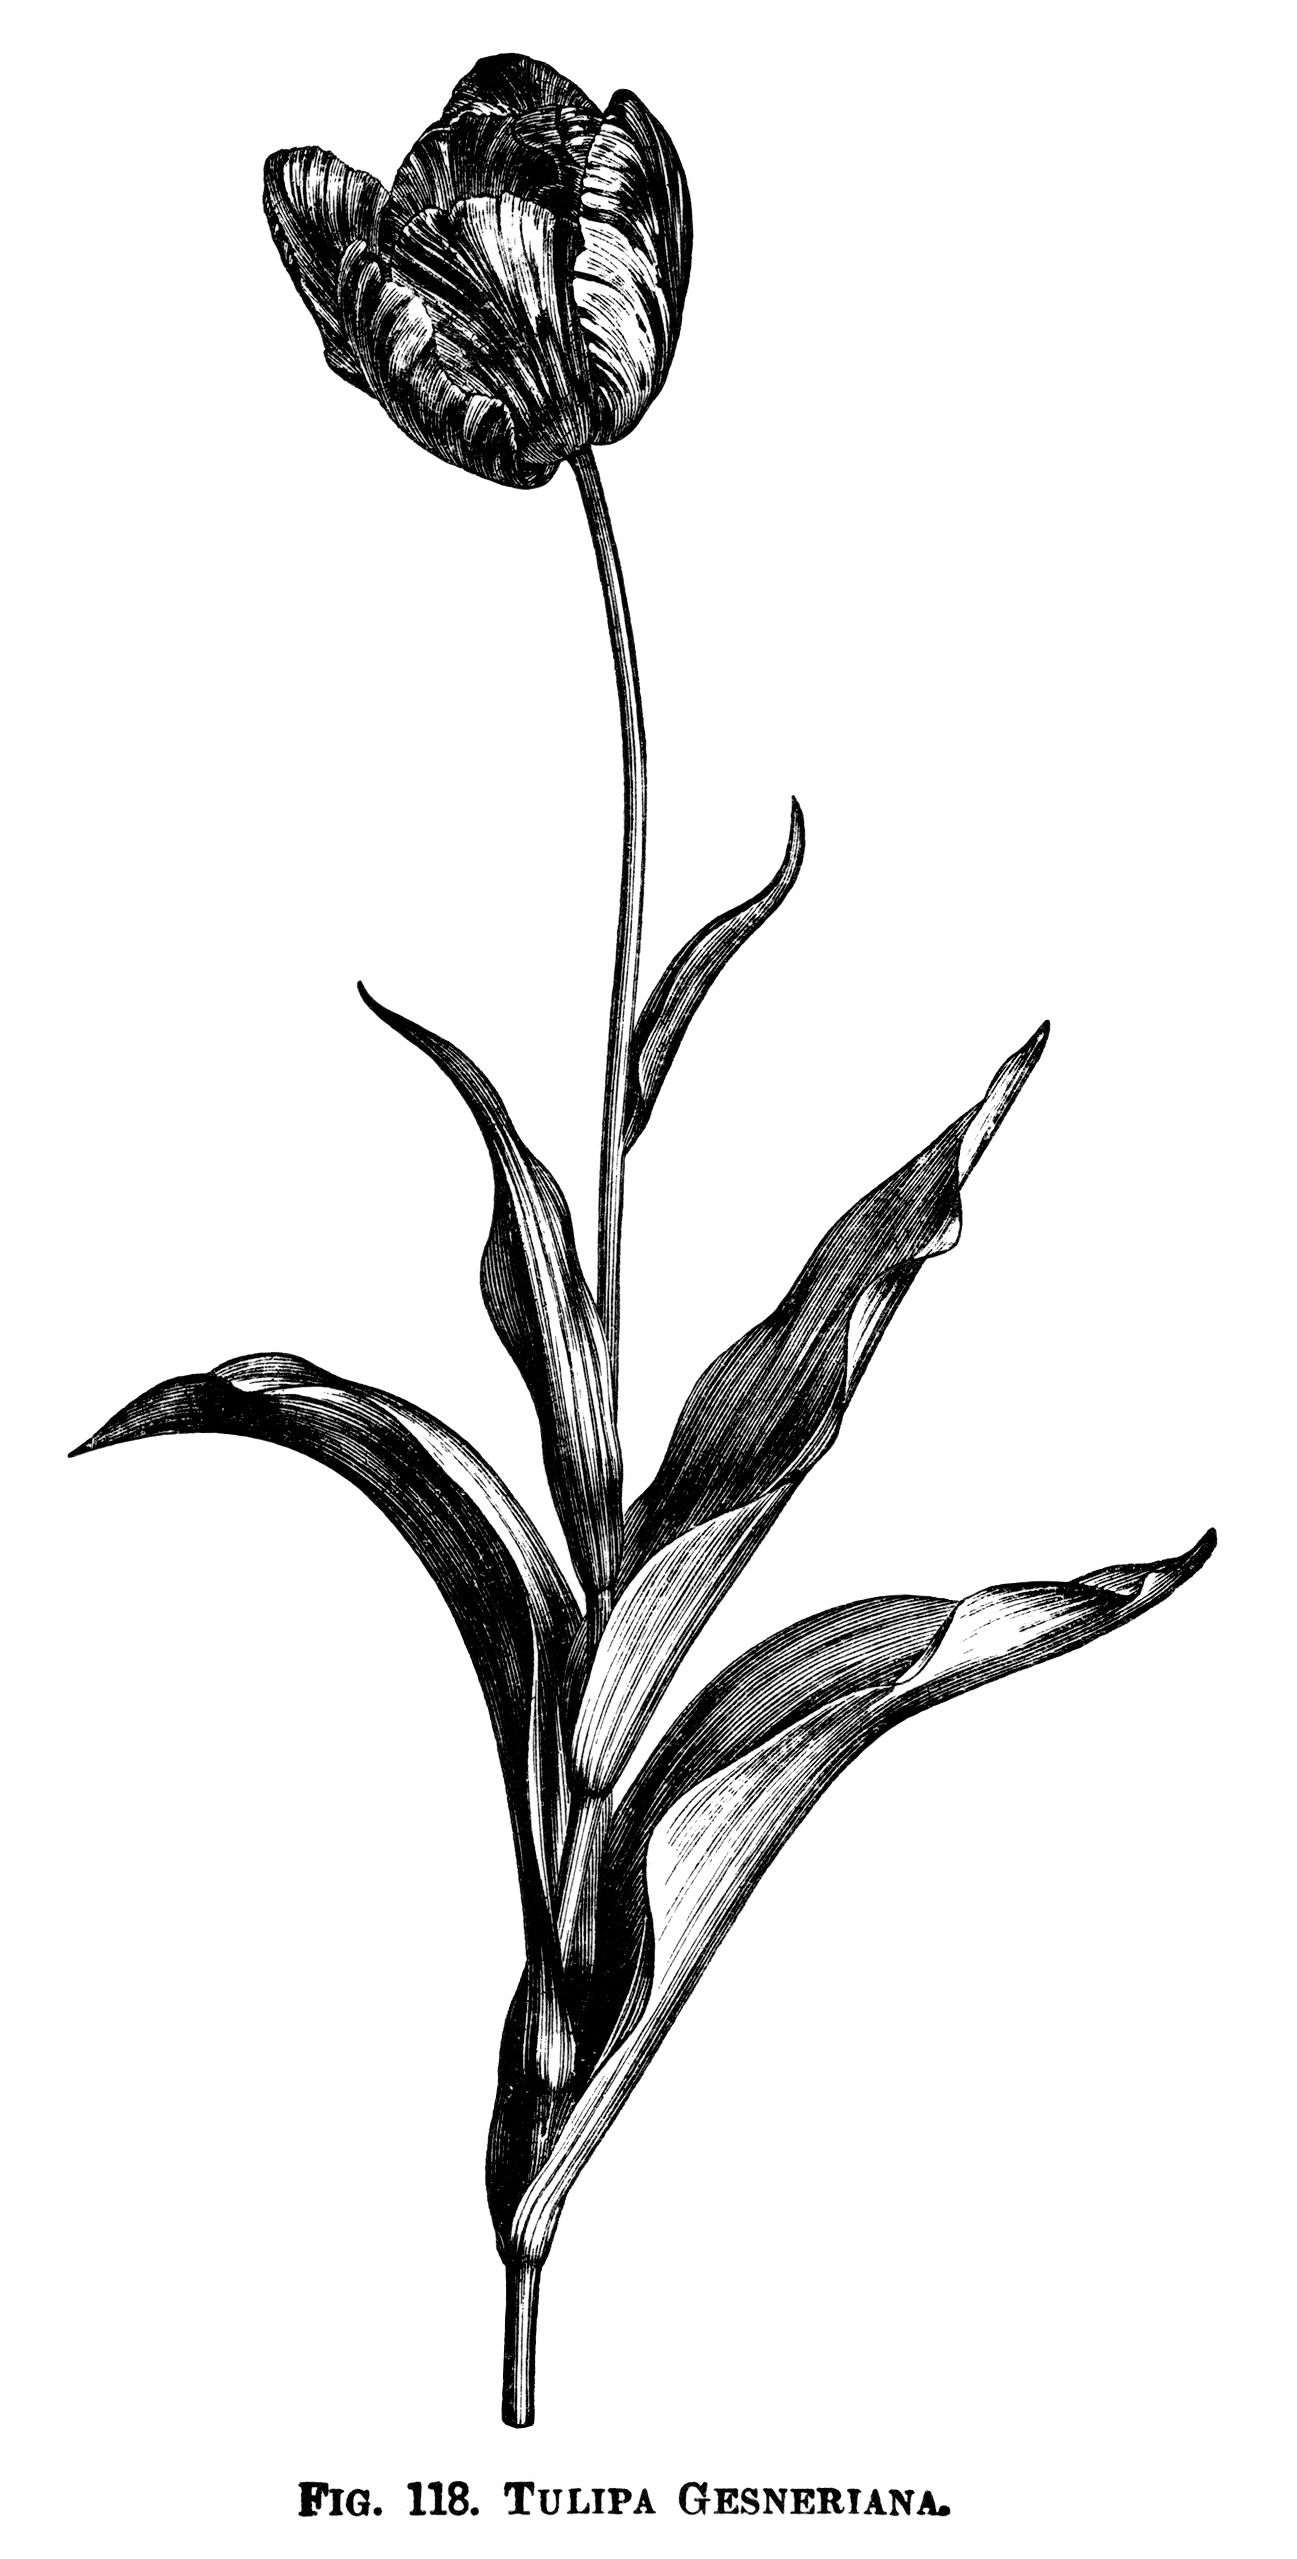 Tulip stem clipart black and wite clip art freeuse stock tulip clipart, black and white graphics, botanical flower engraving ... clip art freeuse stock